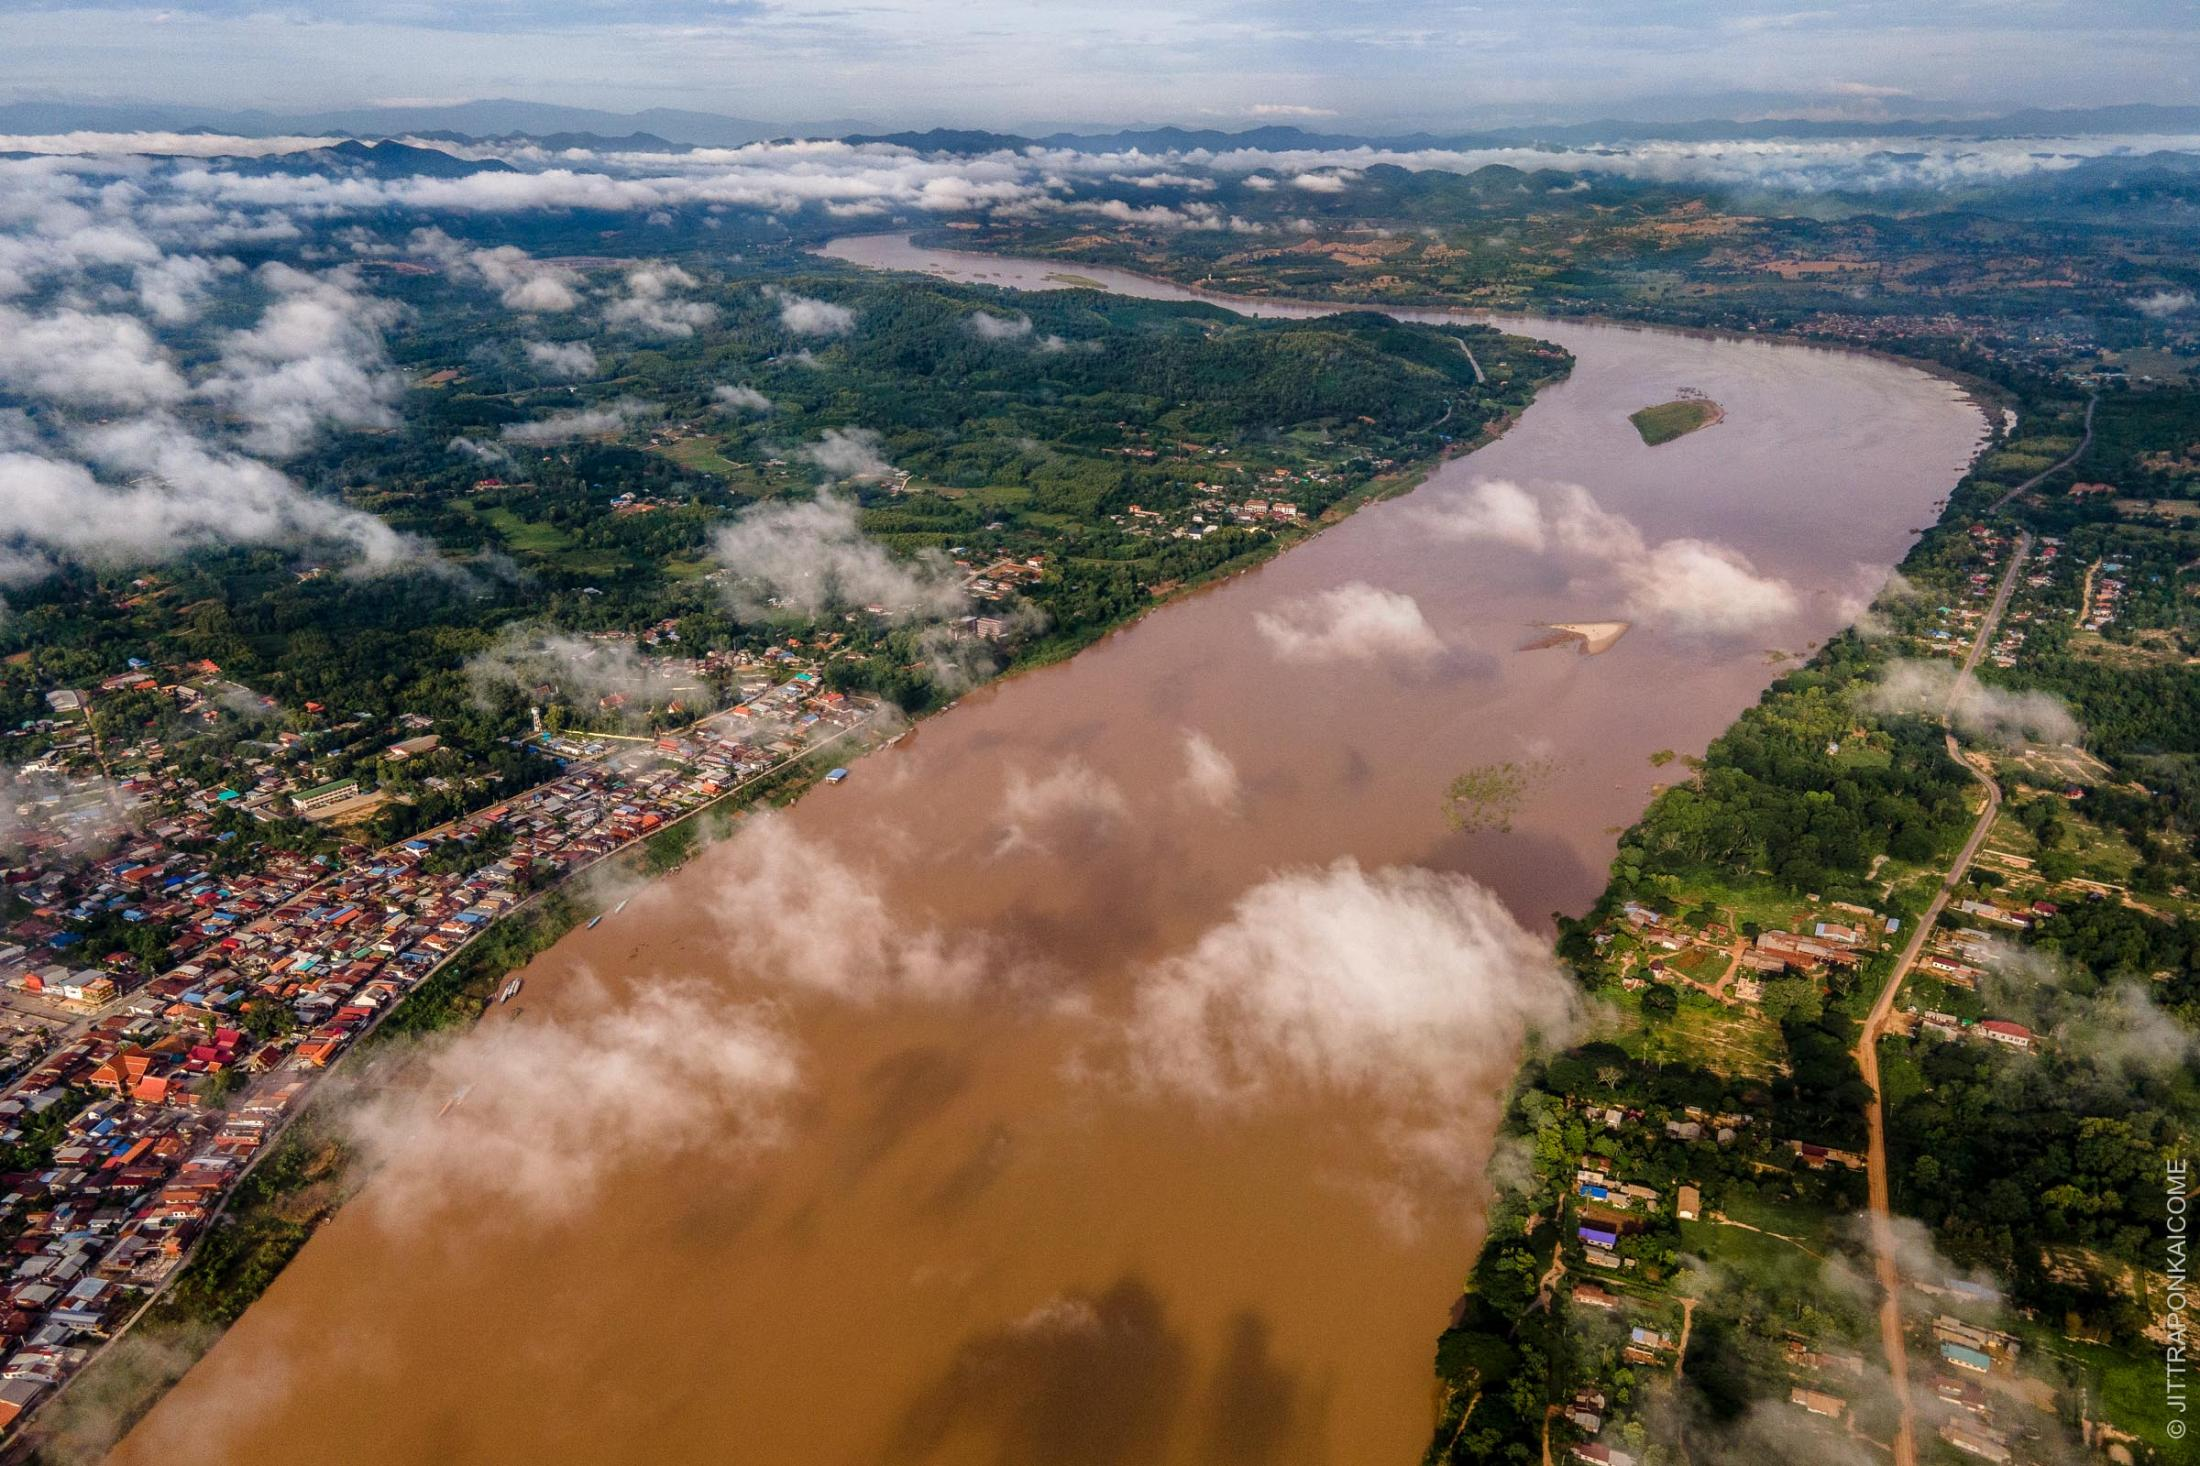 The water level in the rainy season is lower than usual, as it controlled by several upstream dams. If the Samakham Dam is built on the Mekong River, the ecology of the Chiang Khan riverine area will be strongly affected, as well as the livelihood of many people living downstream. In Loei, Thailand – August 2020.